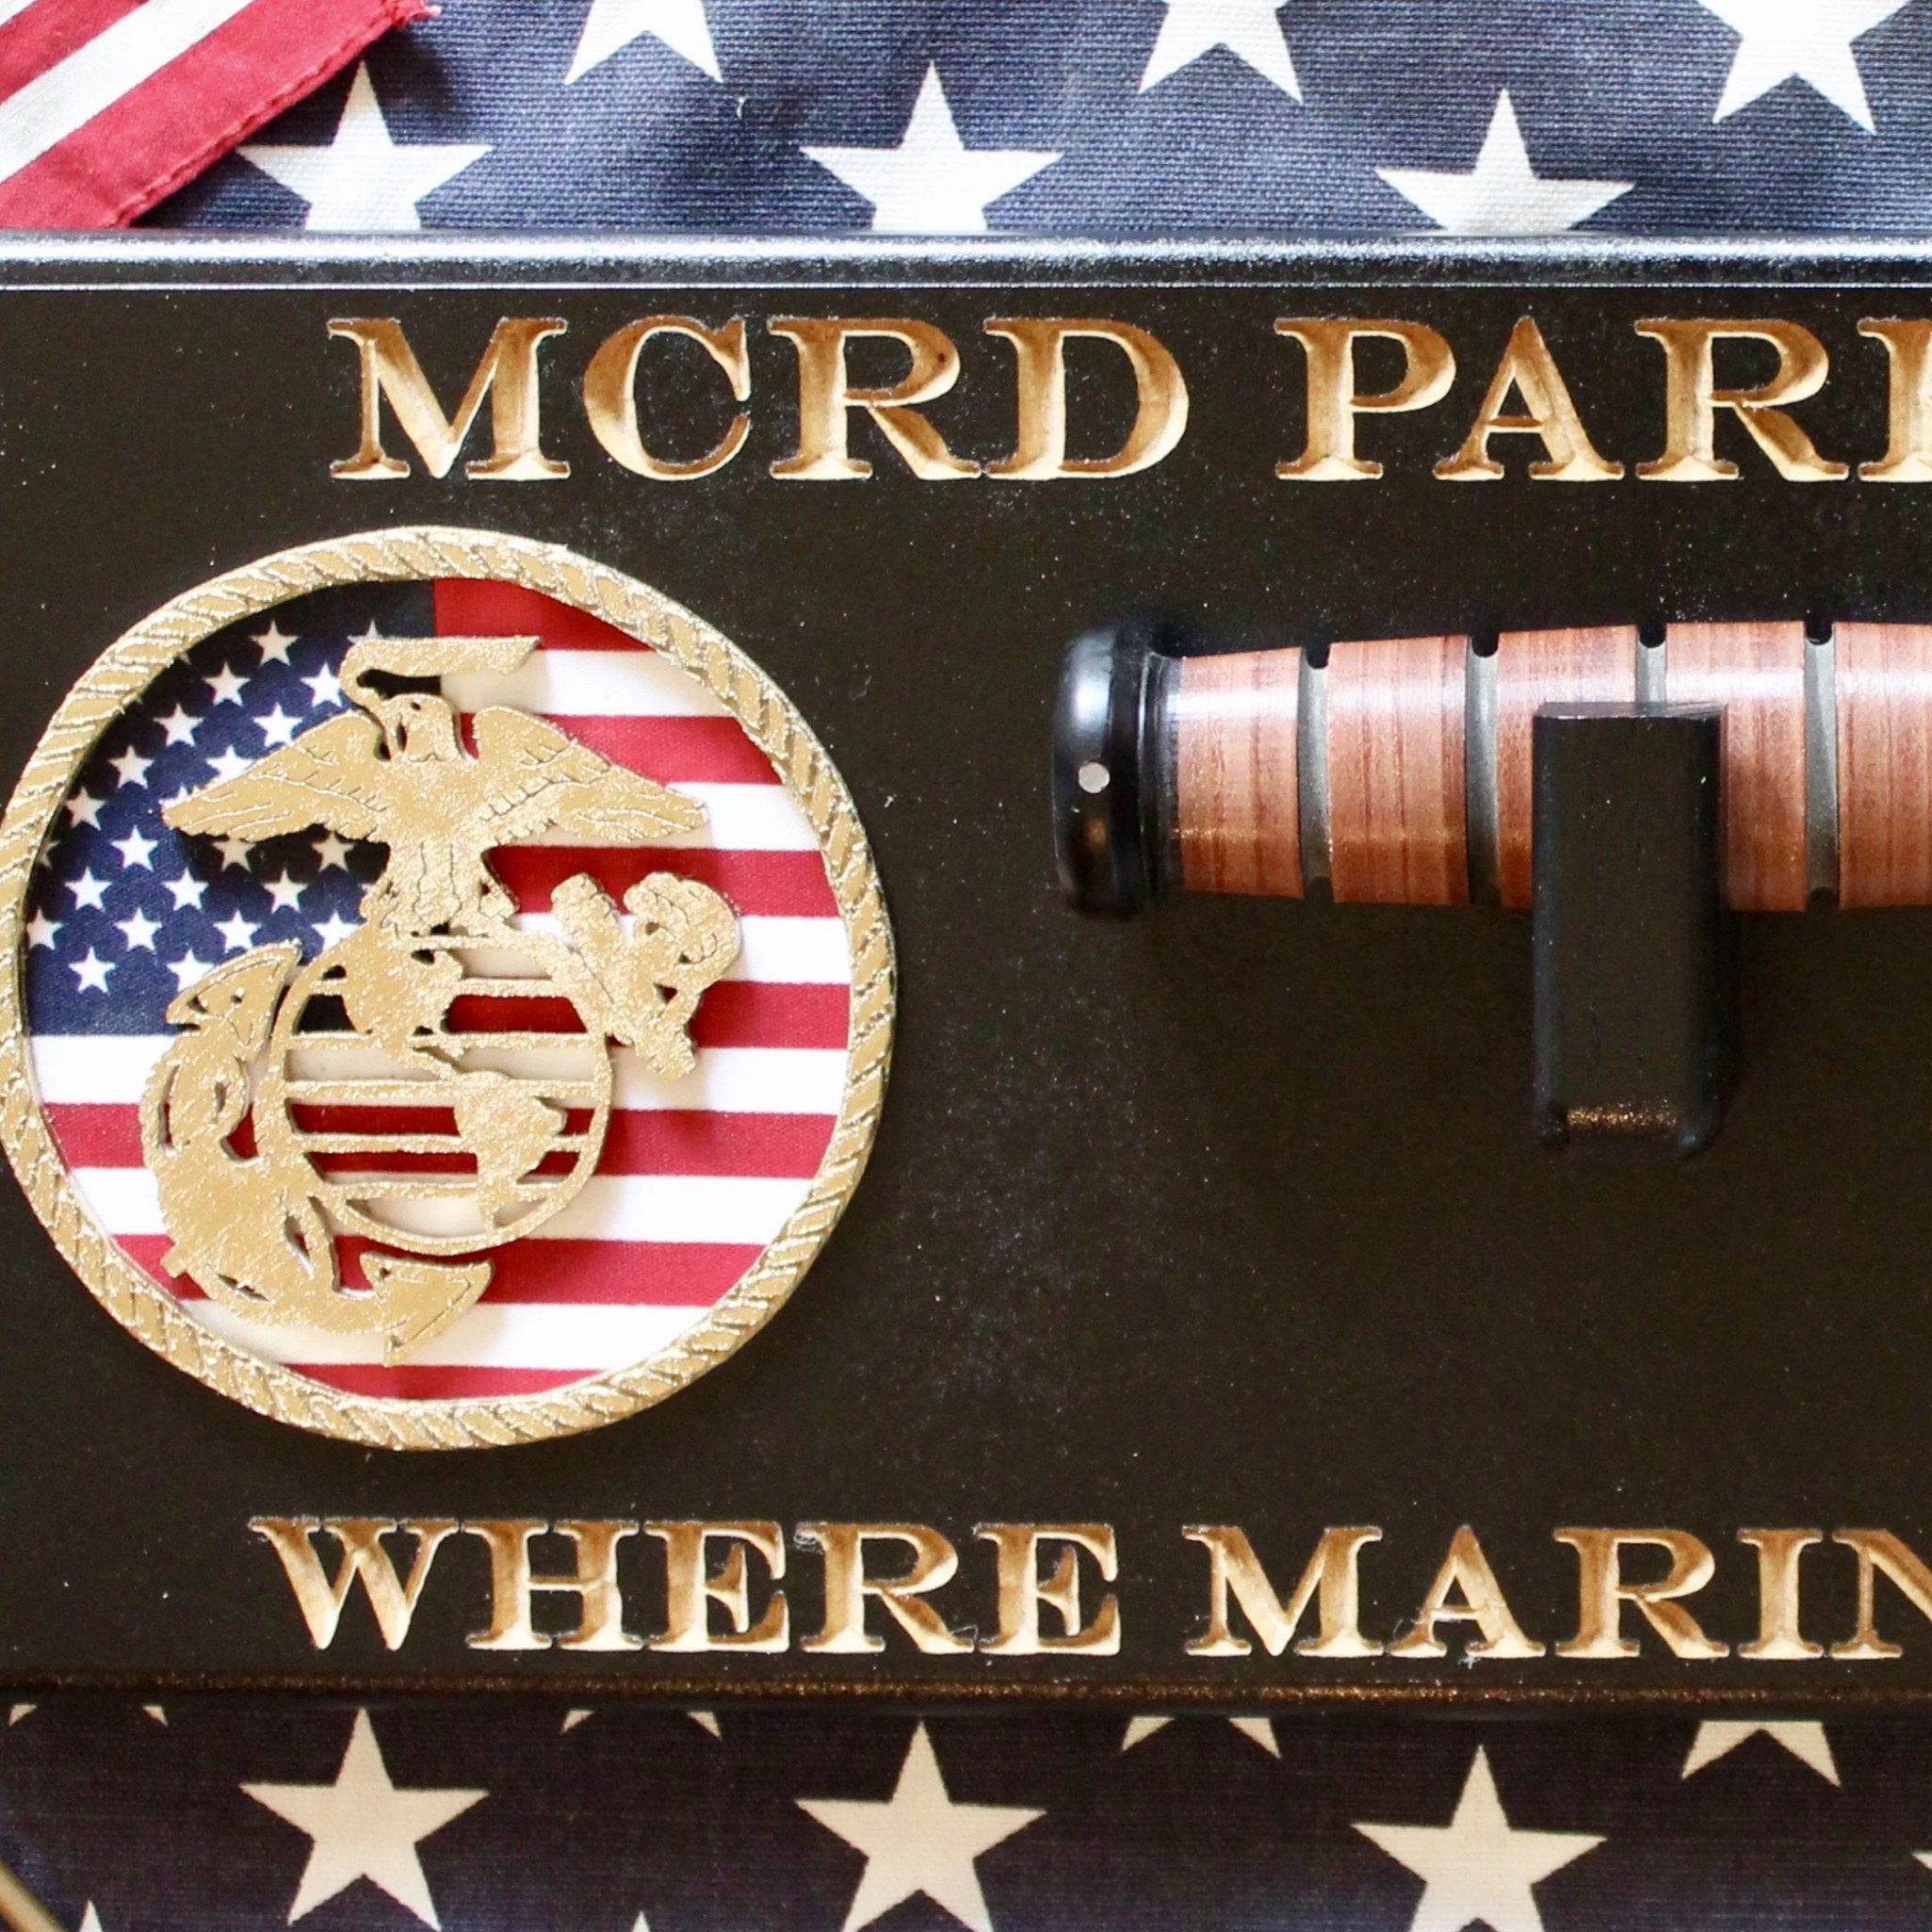 Graduation Gift Ideas For Army Boot Camp  USMC Boot Camp Graduation Display Military Gifts Made of